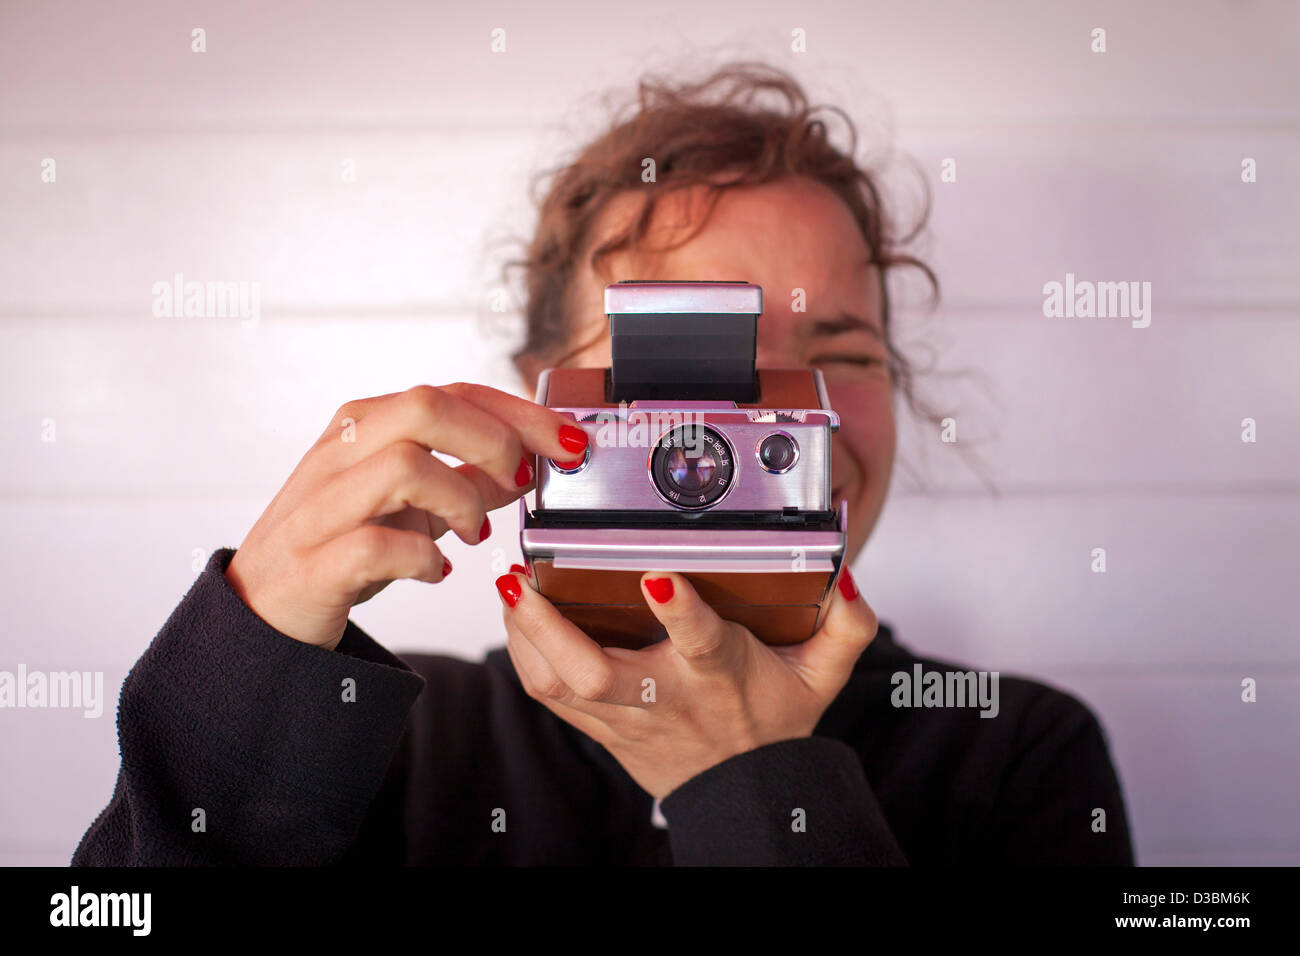 Girl taking a photograph with a Polaroid camera. - Stock Image